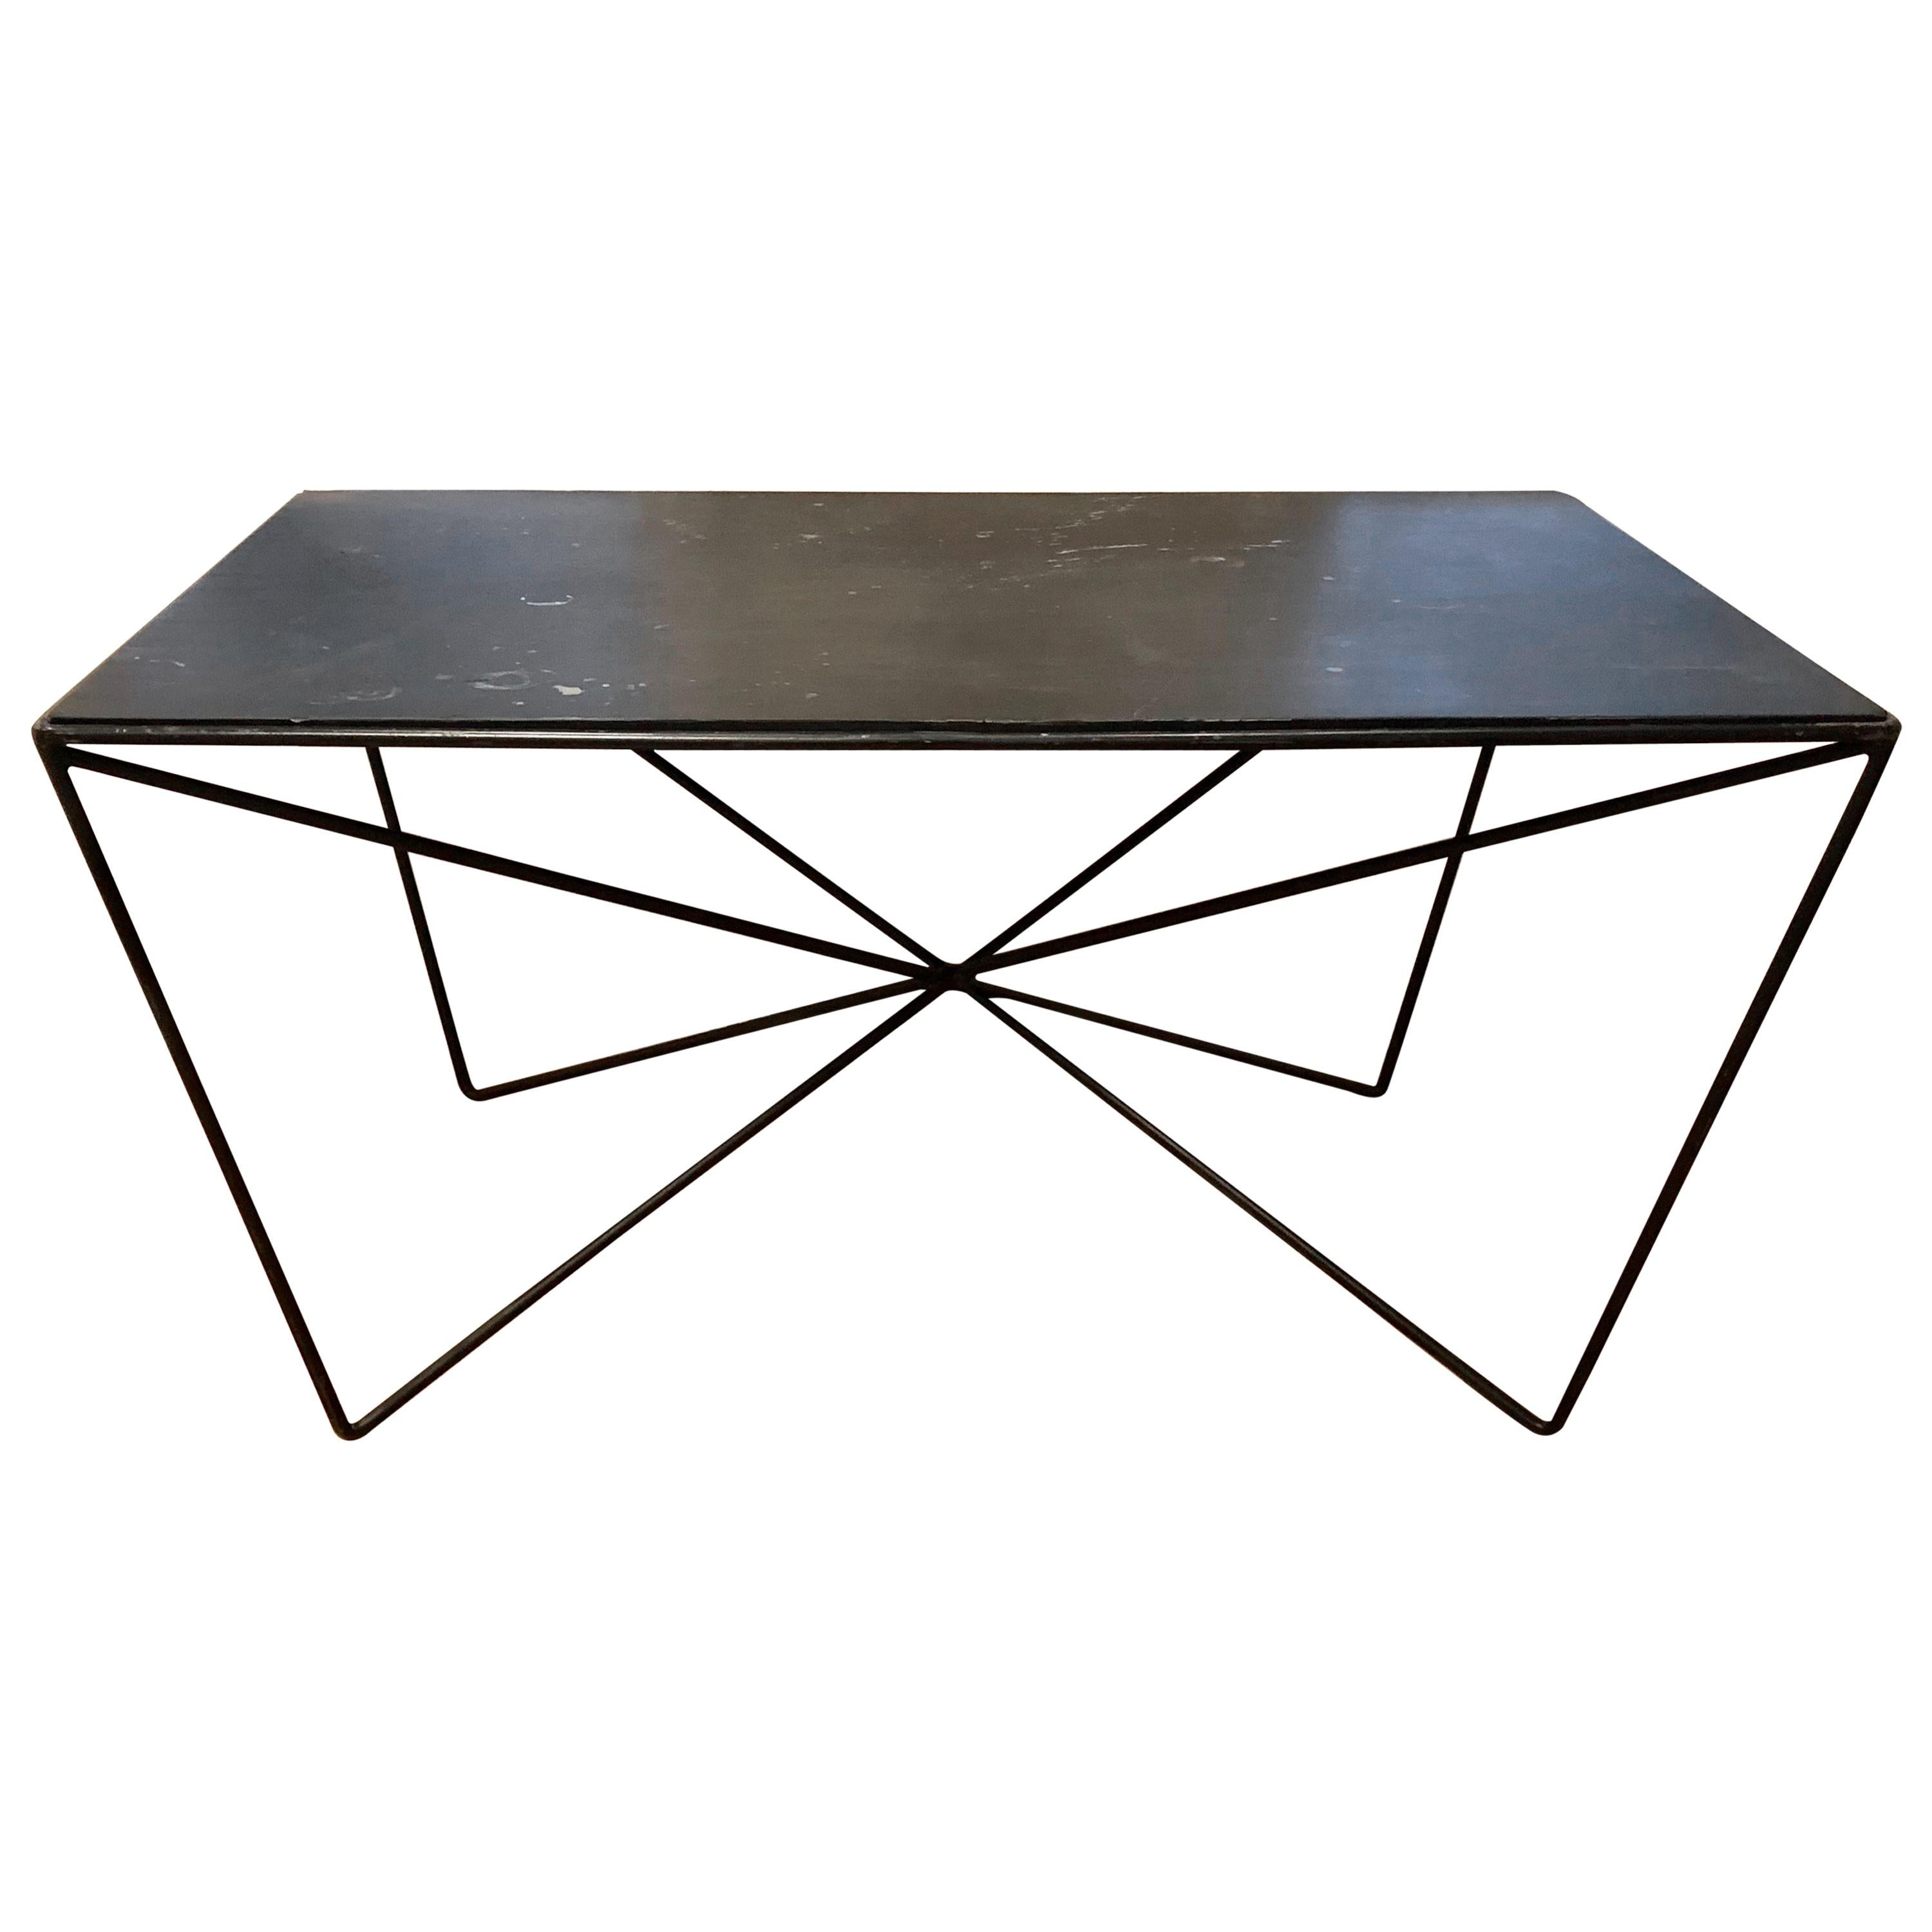 Dining or Center Table Attributed to Darrell Landrum for Avard, USA, 1950s